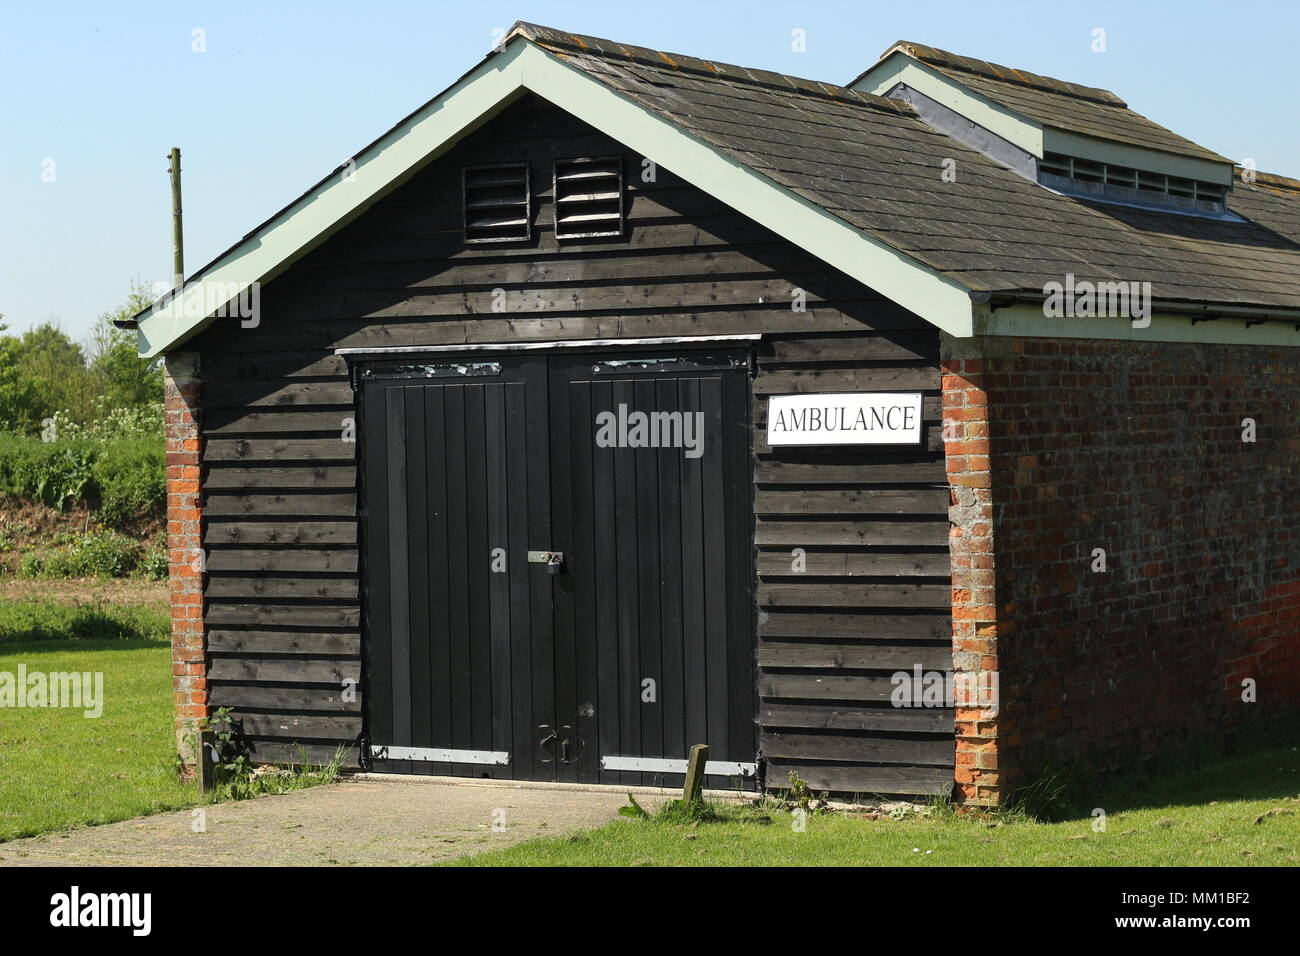 WW1 British Military Heritage site - Ambulance station and morgue building at Stow Maries Great War Aerodrome, Purleigh, Essex. - Stock Image